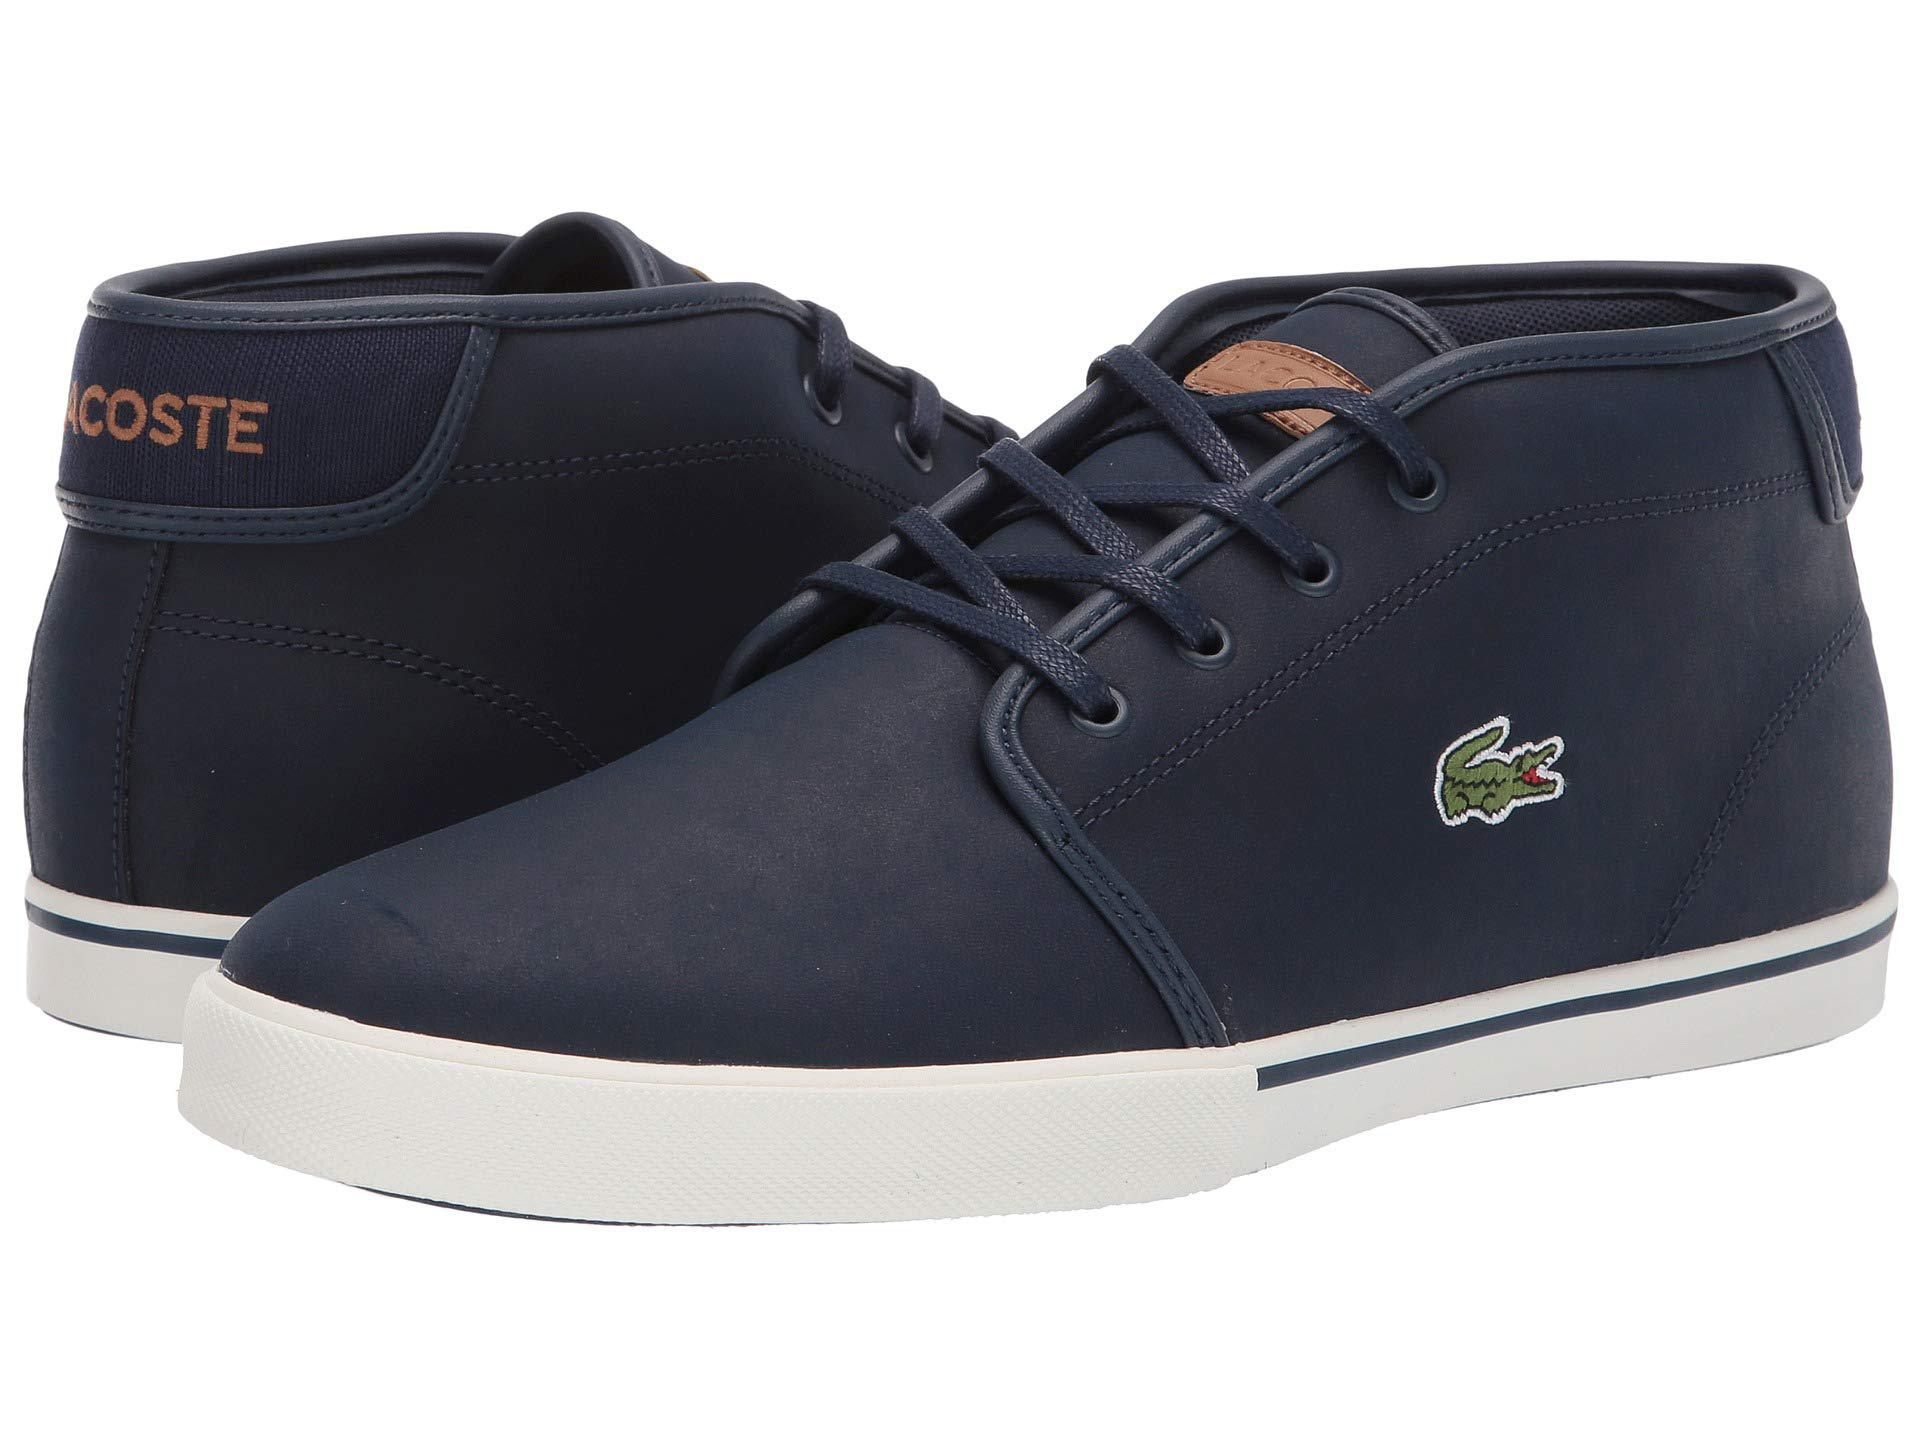 317a8ebd1 Lyst - Lacoste Ampthill 119 1 Cma in Blue for Men